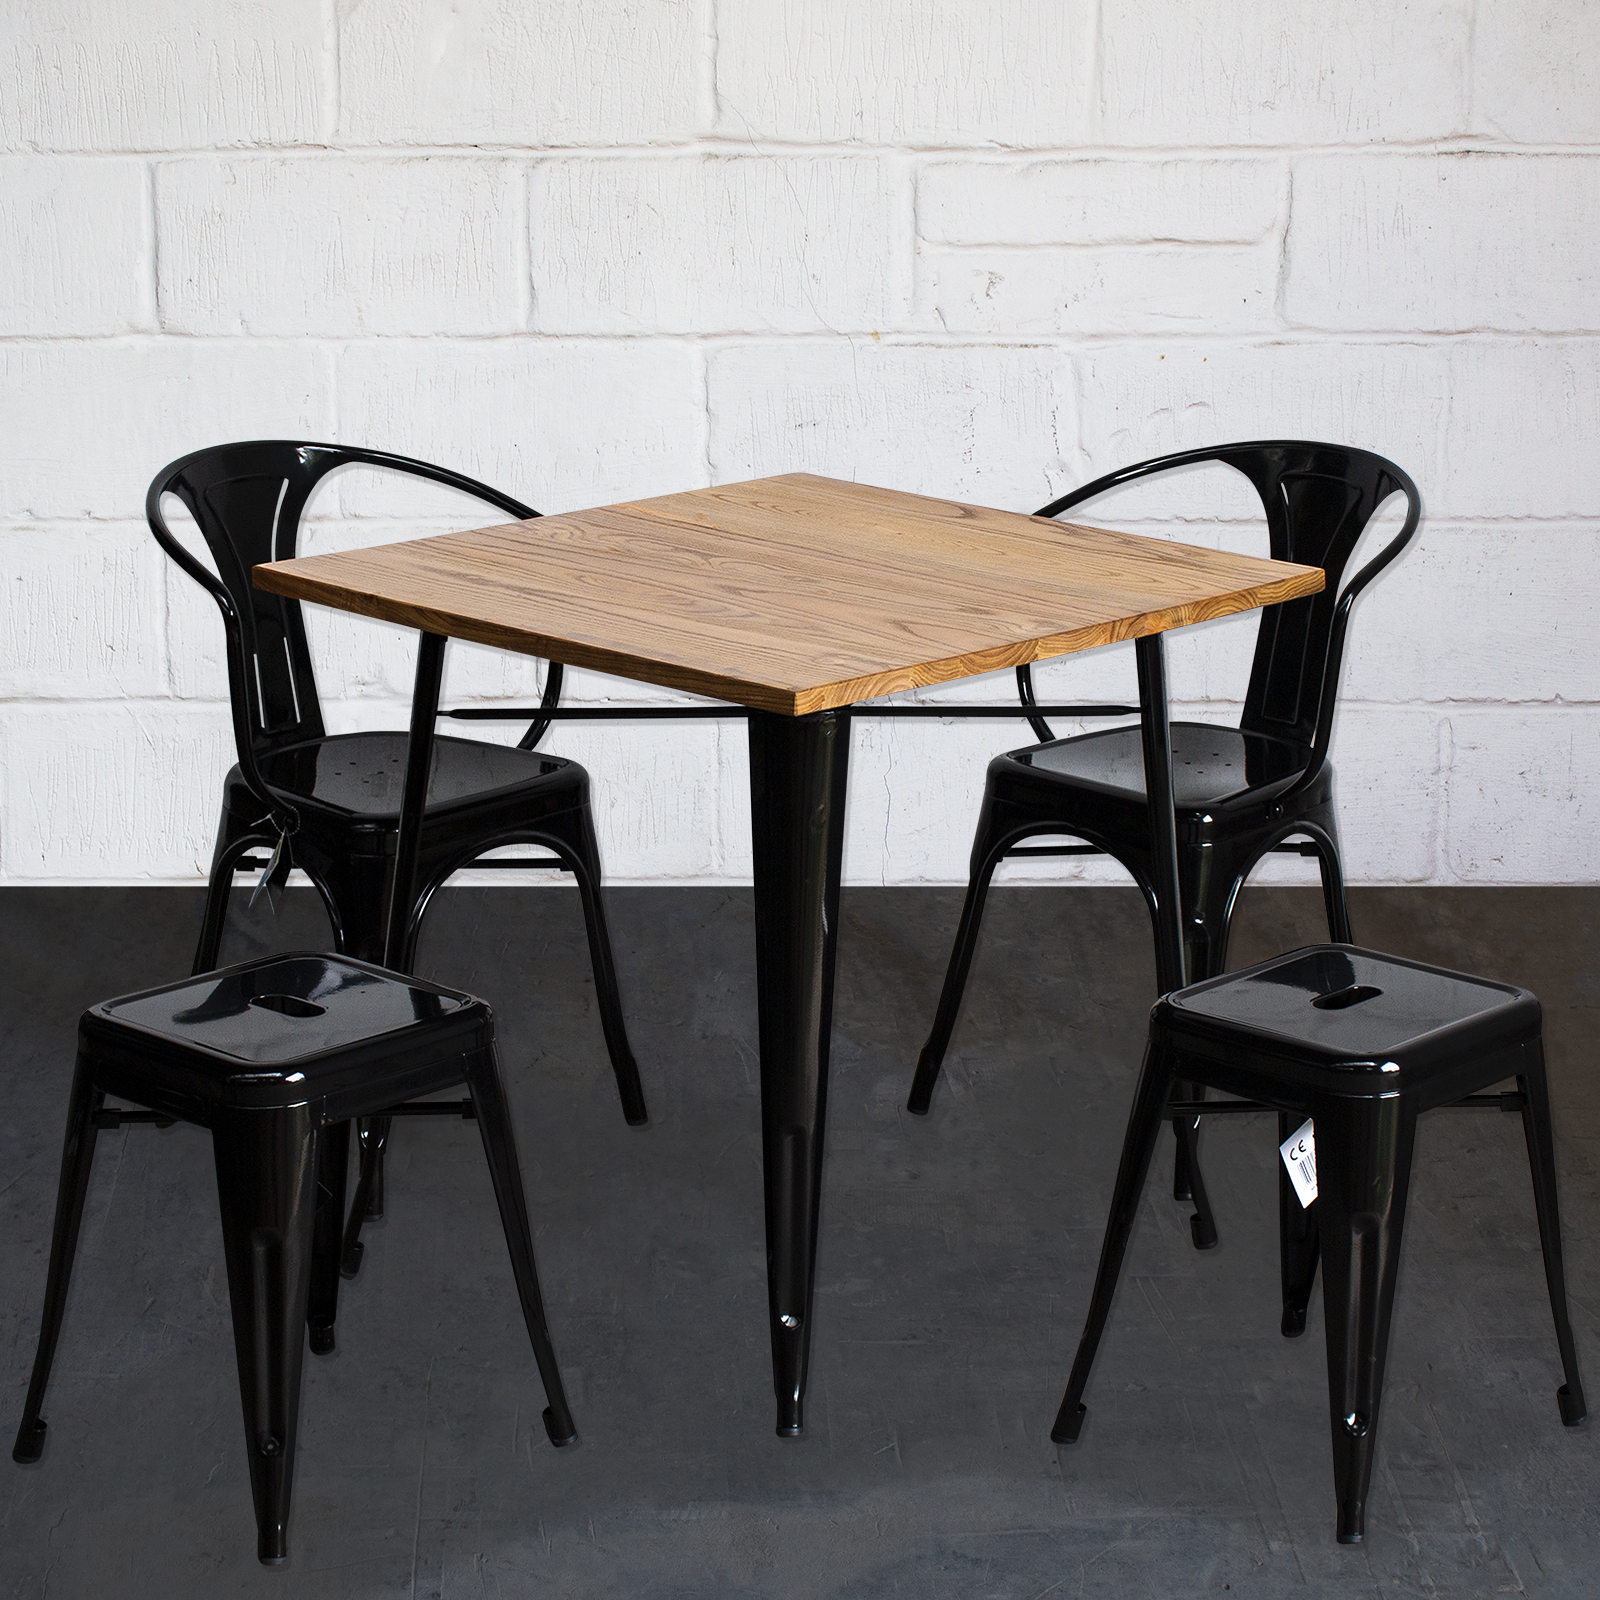 3PC 5PC Square Dining Table Chair Sets Black Metal Light Wood